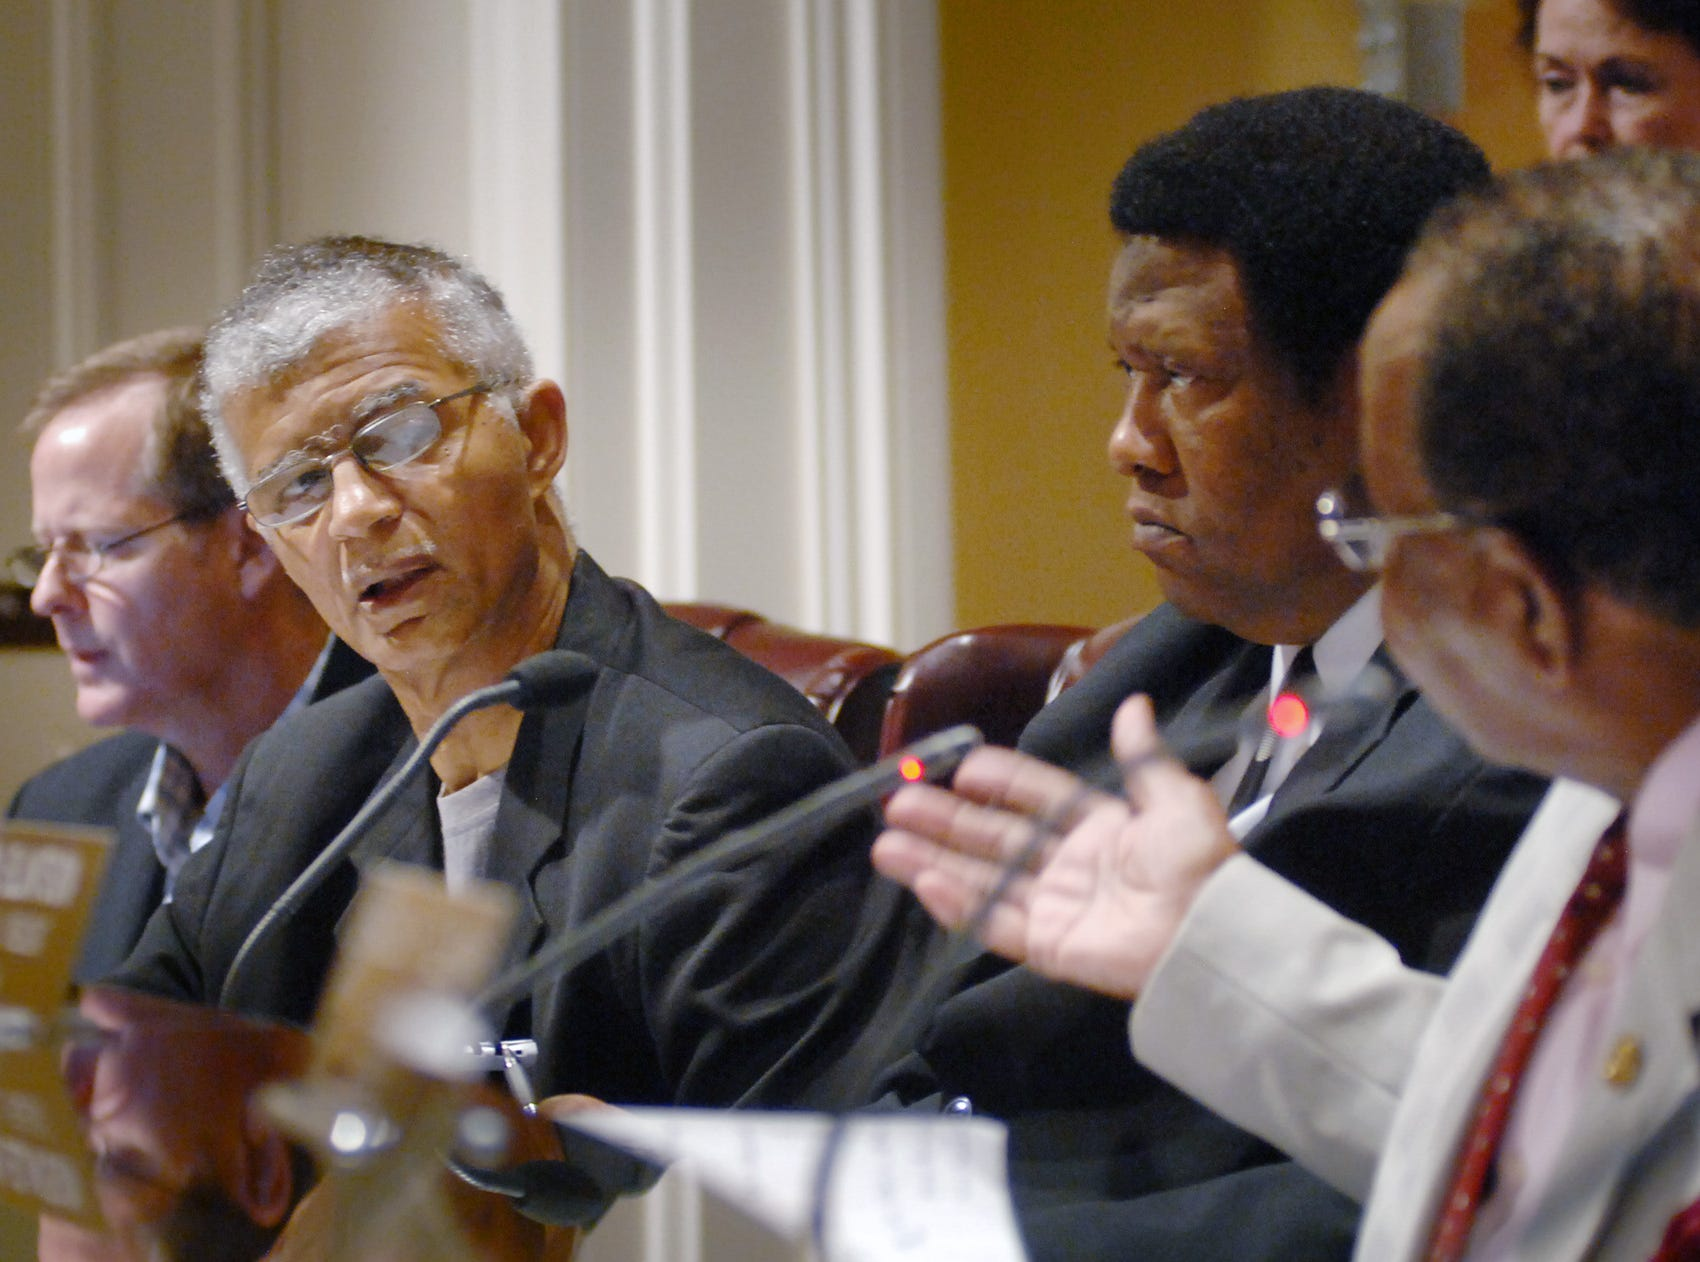 Jackson City Councilman Chokwe Lumumba (second from left) listens to council President Frank Bluntson (right) during Tuesday's council meeting at City Hall.  During the meeting, the two repeatedly sparred over the amount of public comment to entertain during the regular meeting on the issue of an ordinance to ban profiling. Later in the meeting, the council decided to schedule a public forum for Thursday, August, 19.